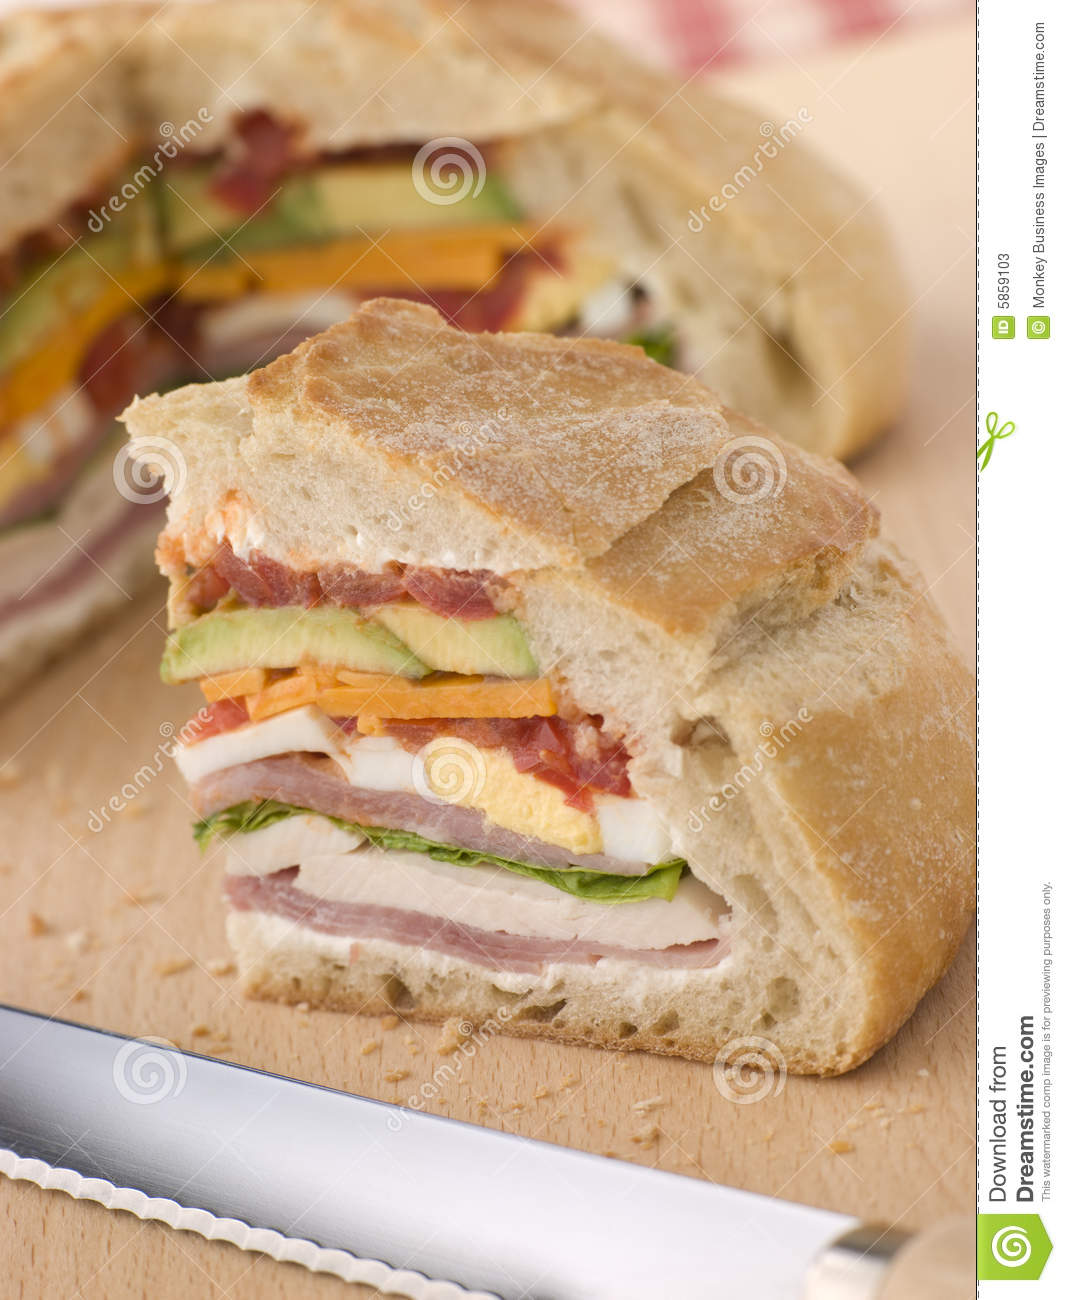 stuffed loaf sandwich stock photos image 5859103